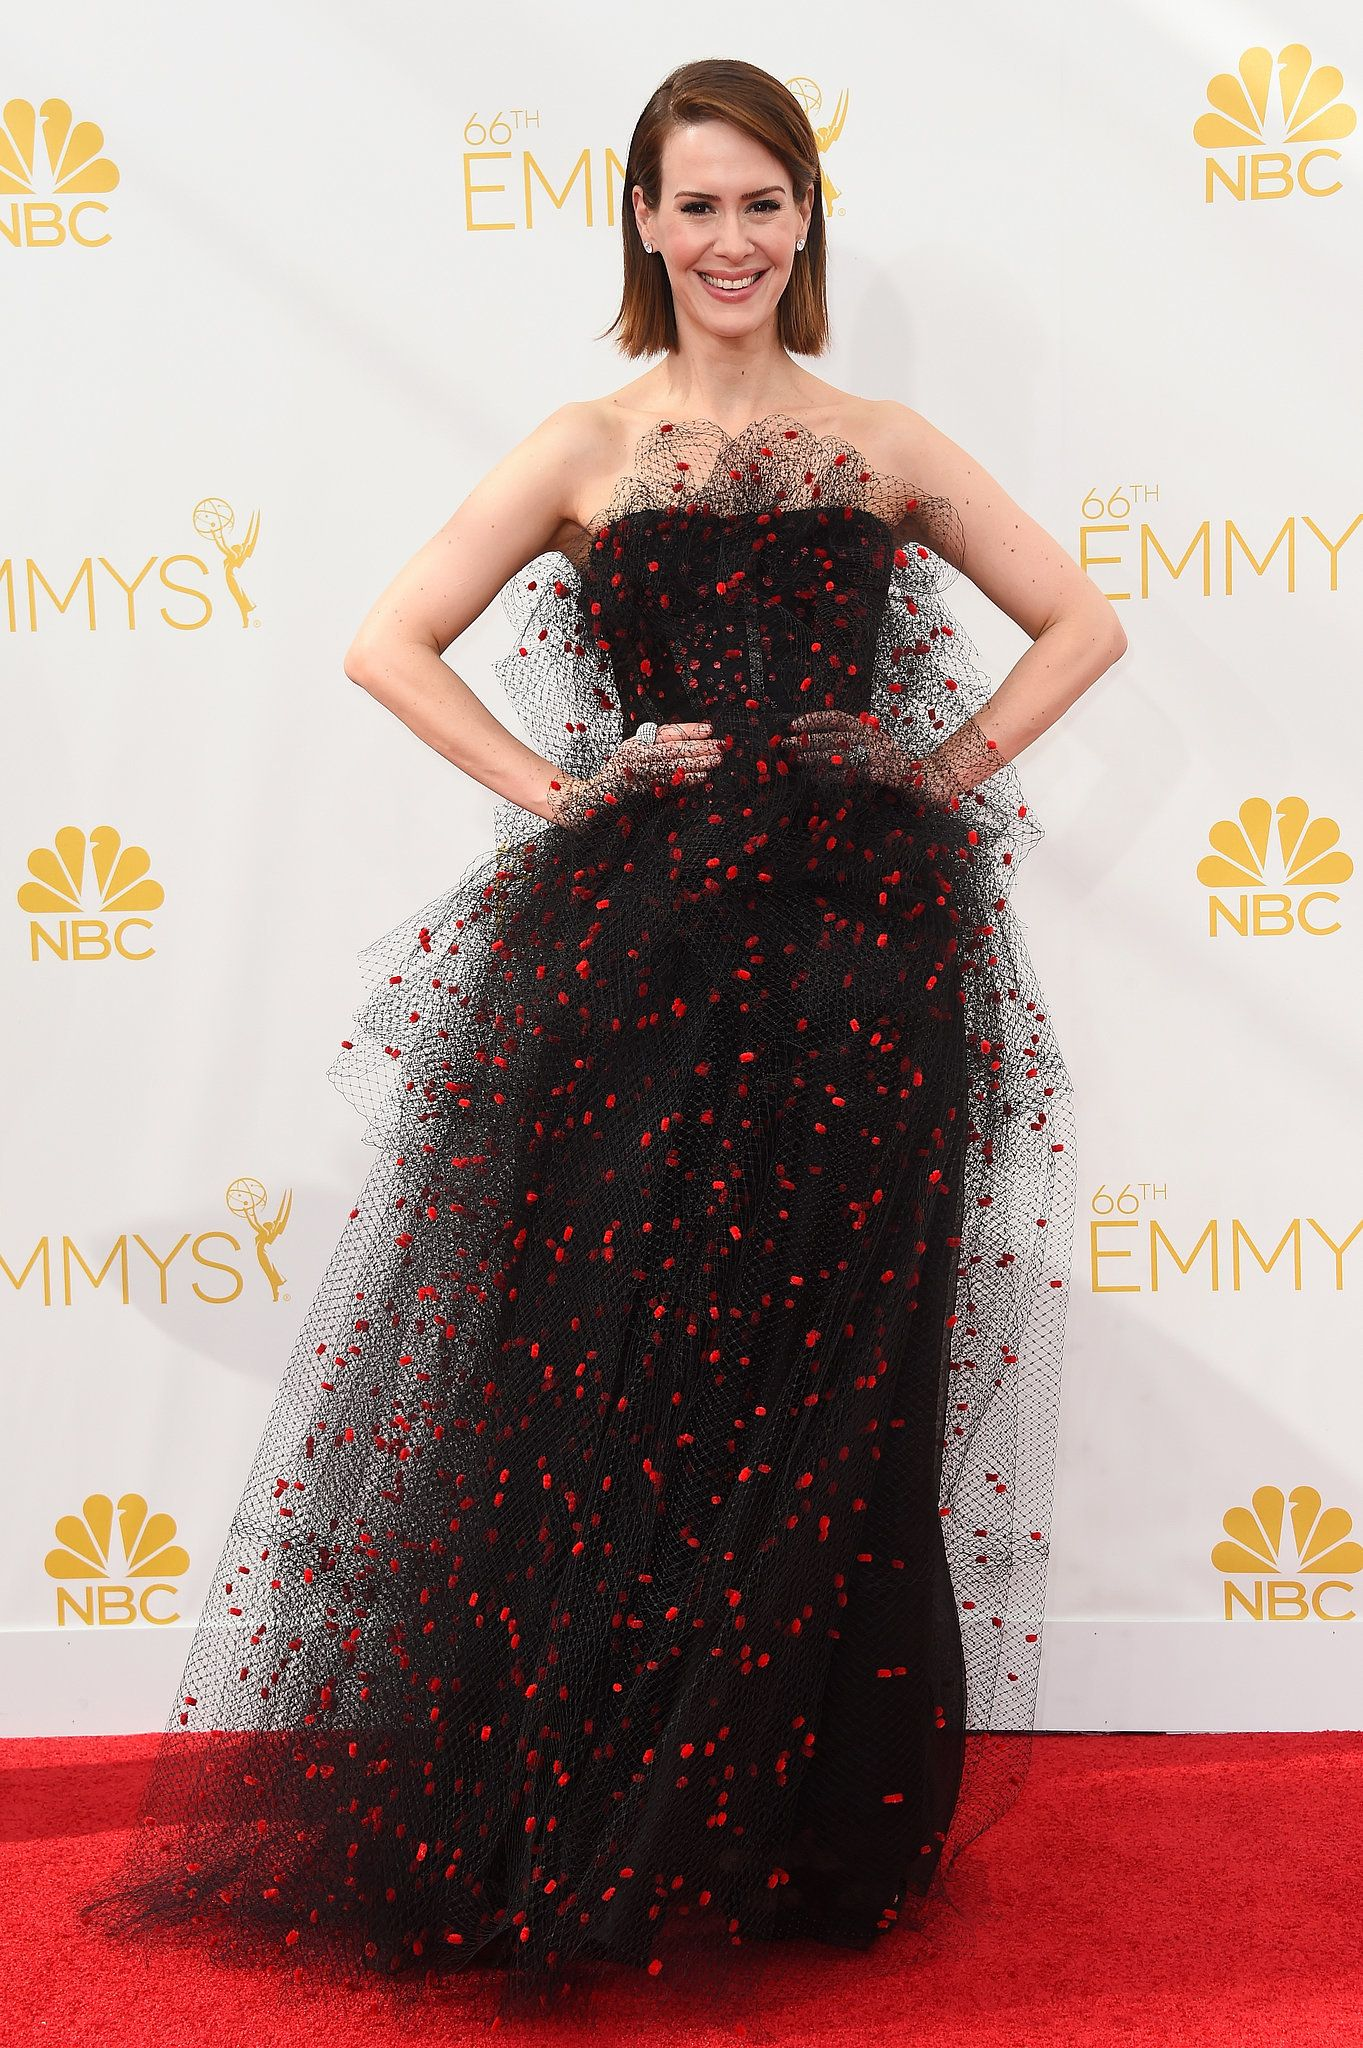 Sarah Paulson took a whimsical route in her polka dot tulle gown at the Emmys.